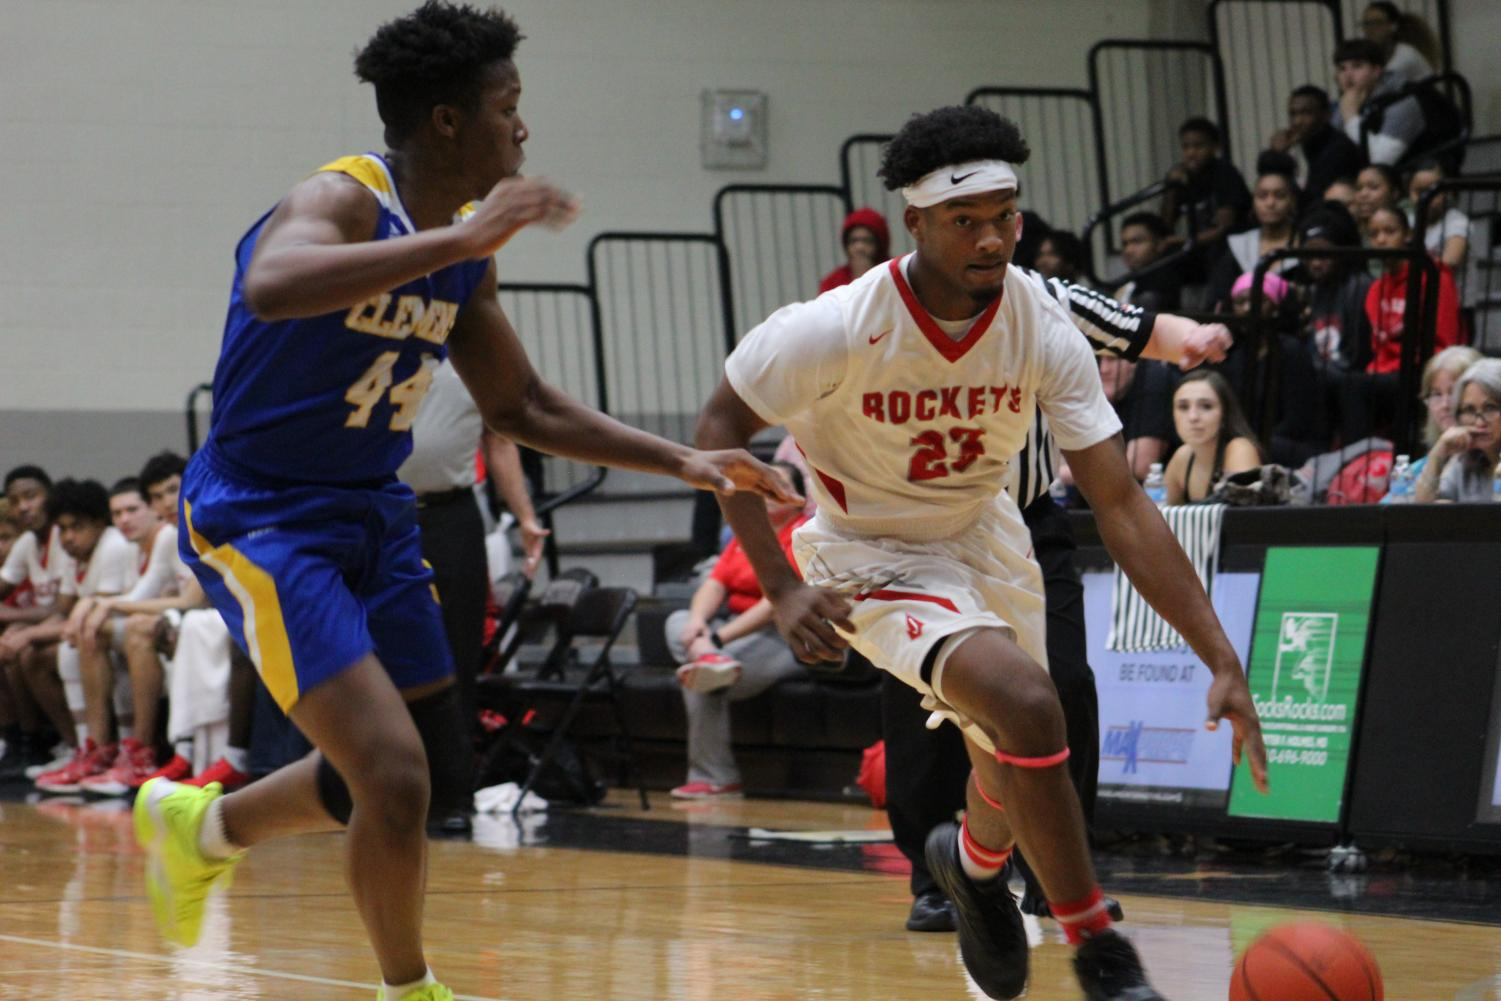 Junior Amarea Bailey-Davis dribbles th ball past the Clemens' defense. The Rockets placed second in the district after beating the Clemens Buffaloes, 72-68.